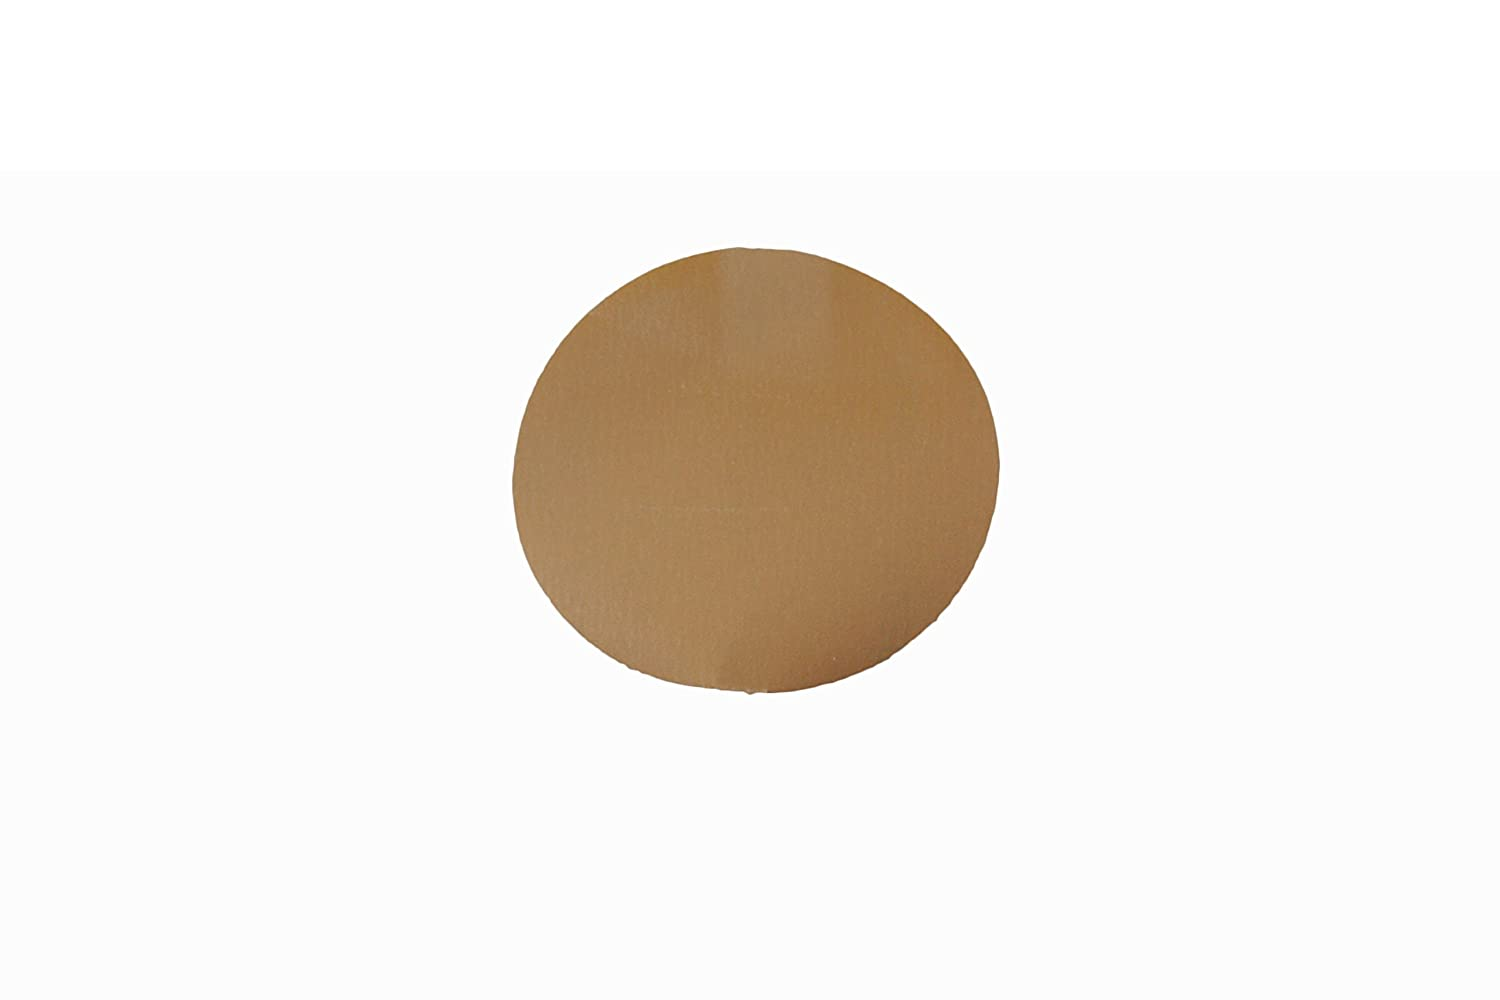 No Hole, 100 discs per roll Sunmight 00611 Gold 6 220 Grit PSA Link Roll Disc